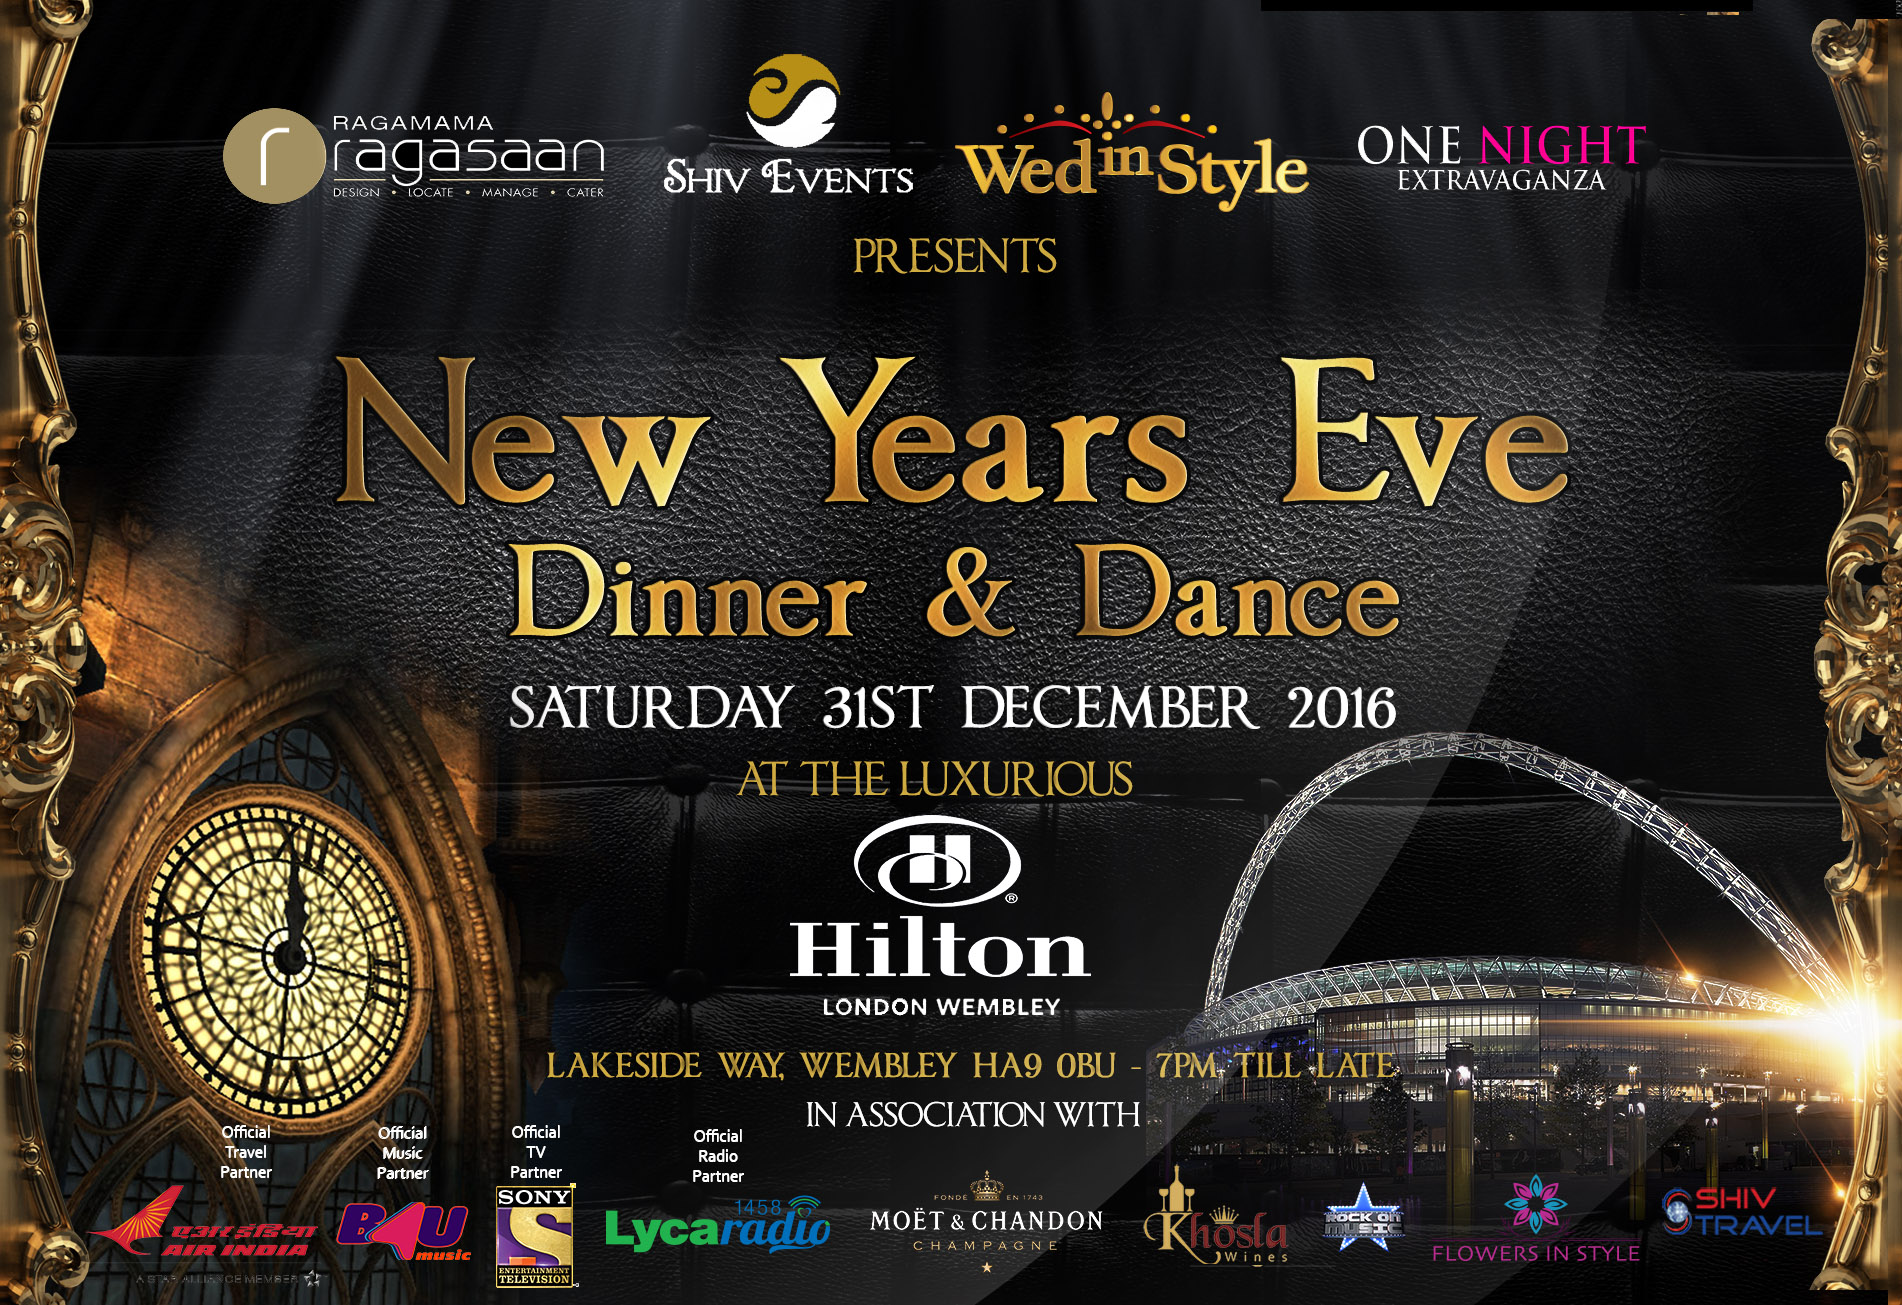 New years eve 2016 dinner and dance hilton wembley for What to make for new years eve dinner